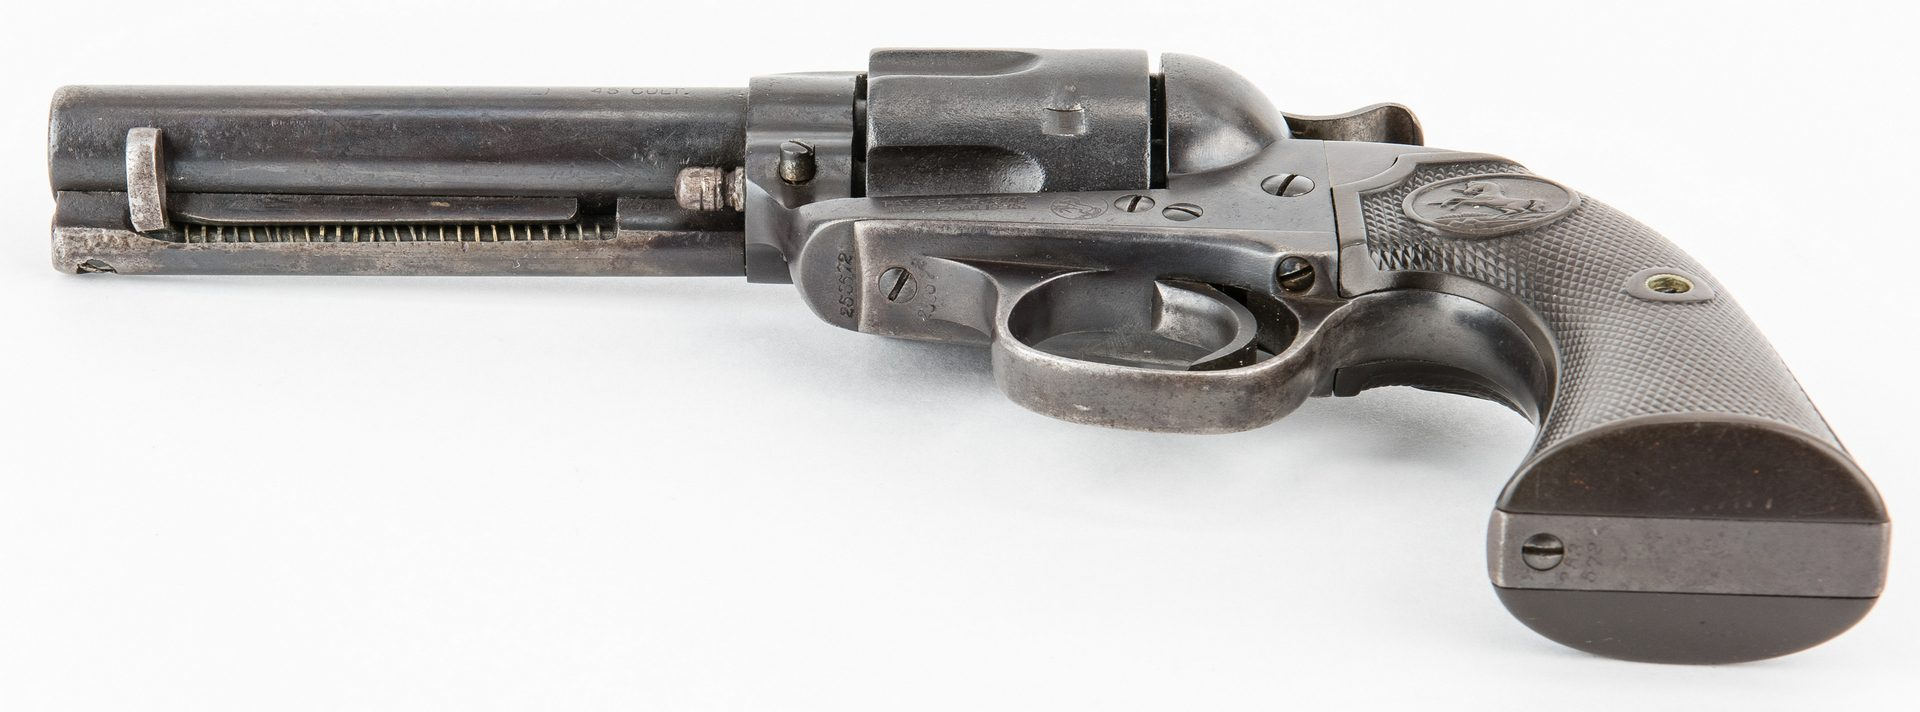 Lot 782: Colt Bisley Single Action Army Revolver, .45 Caliber